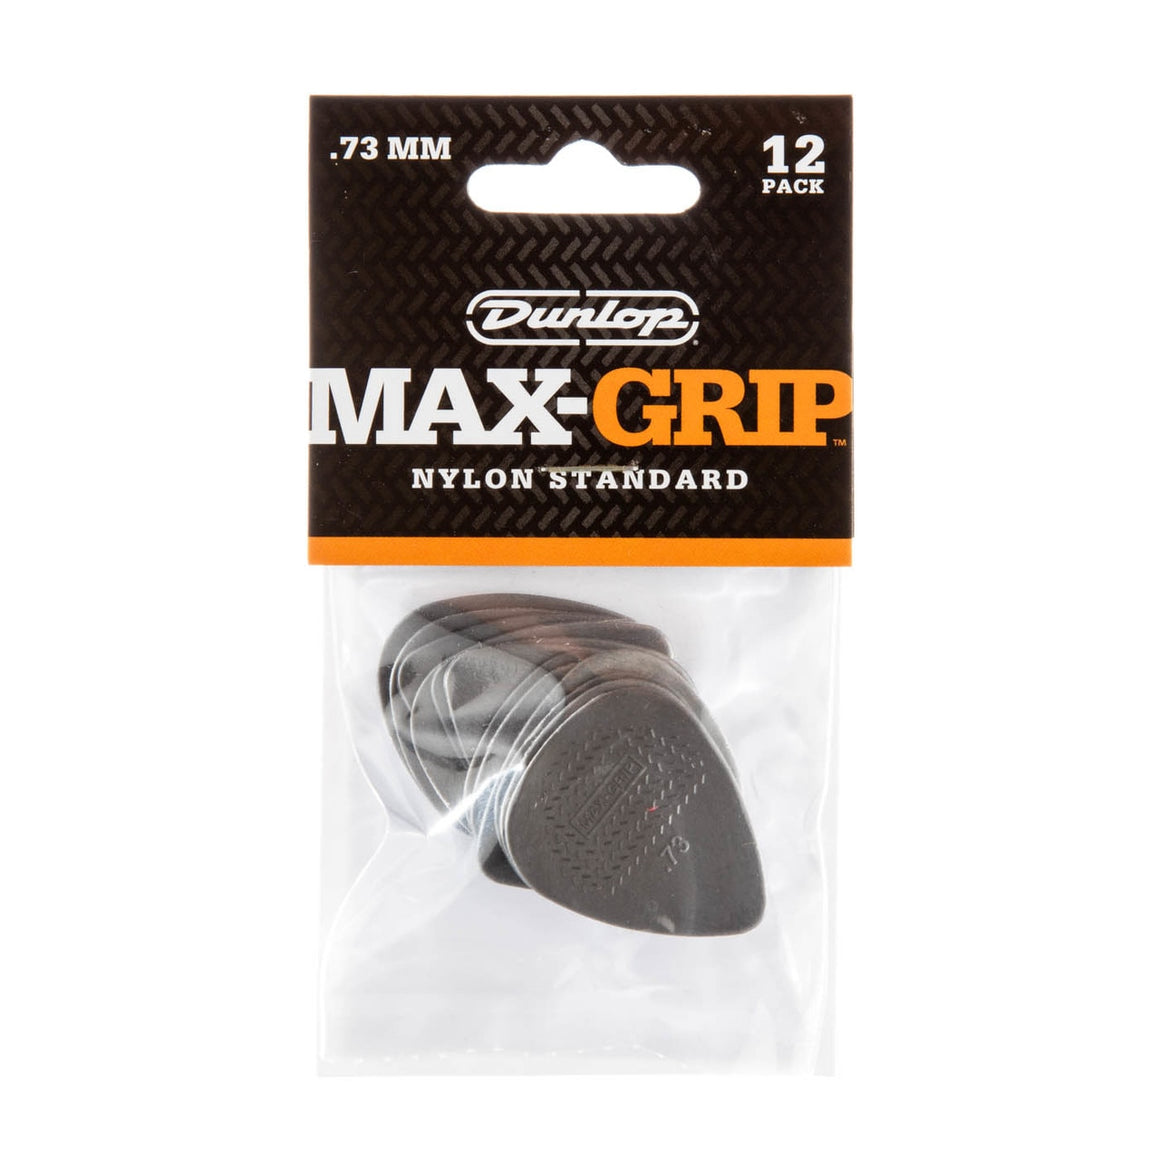 Dunlop Max Grip 12-Pack .73mm